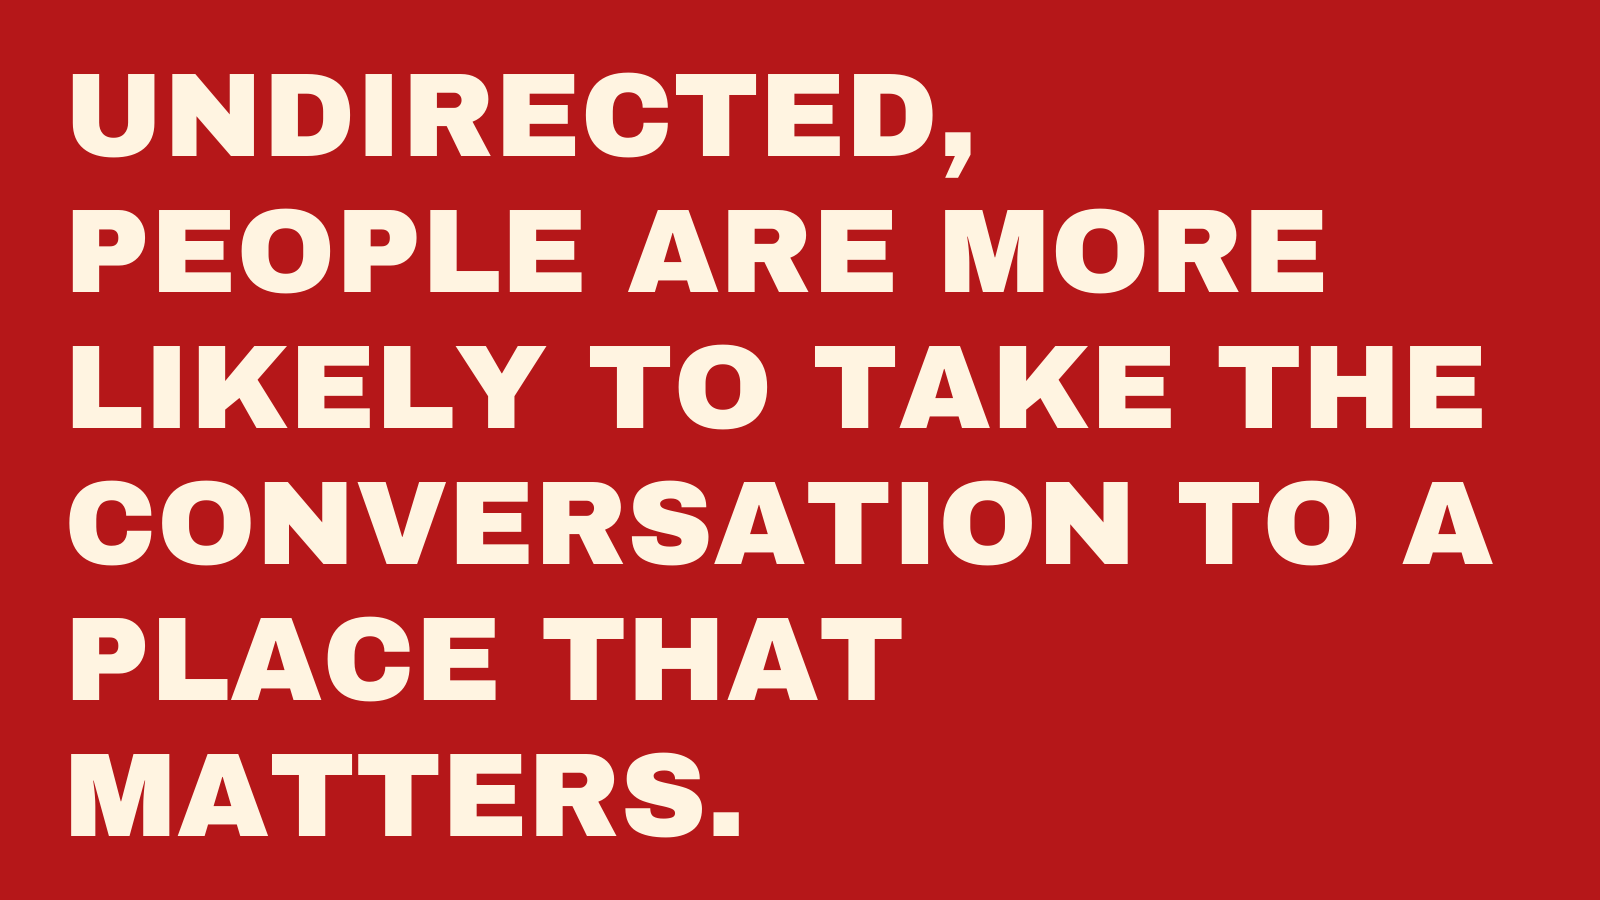 Undirected, people are more likely to take the conversation to a place that matters.